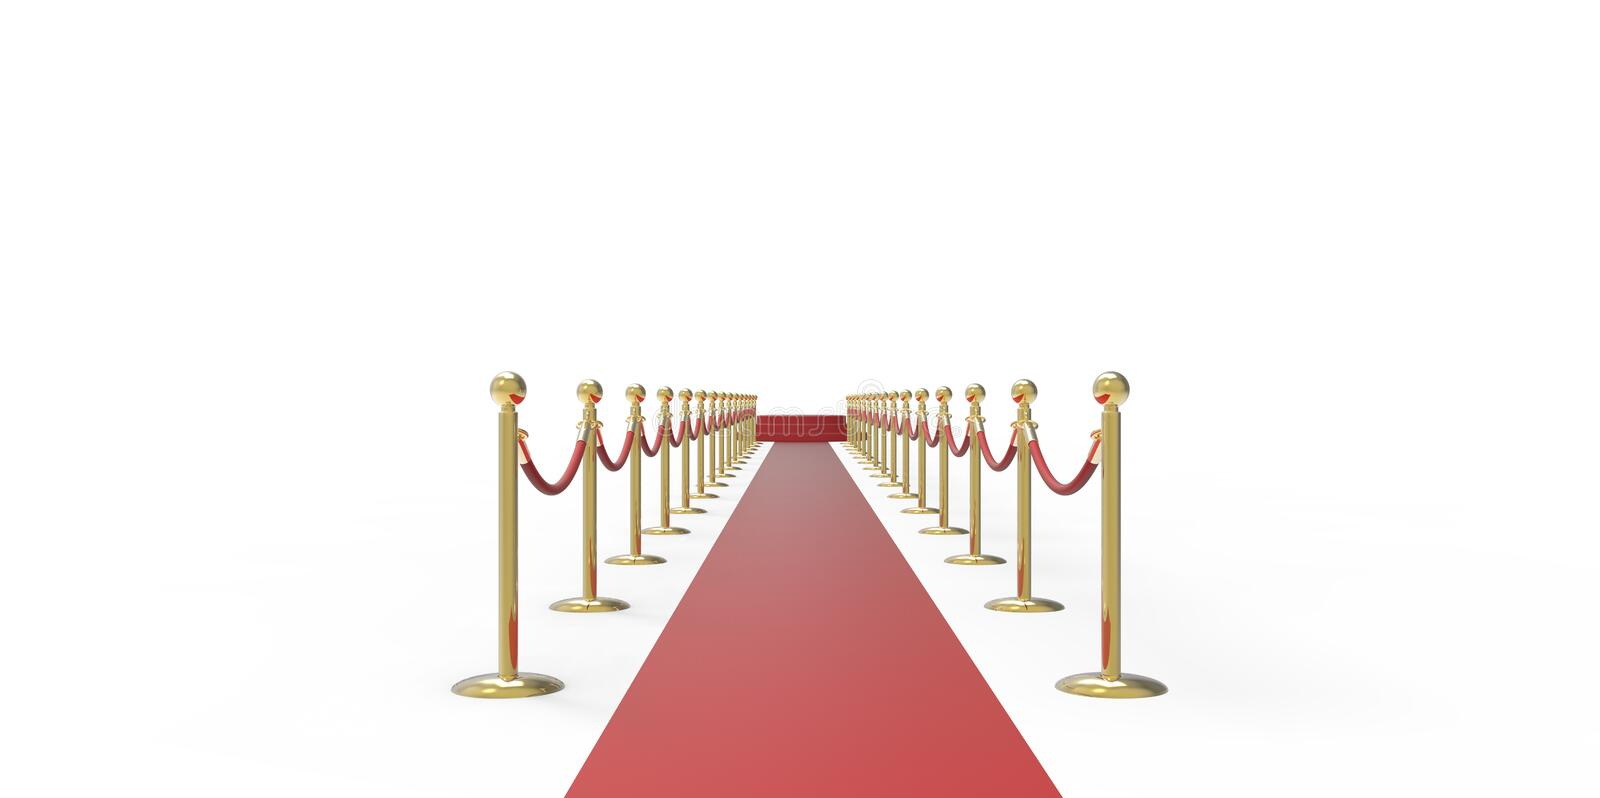 Red podium on red carpet VIP way gold fence on white gray background stock illustration